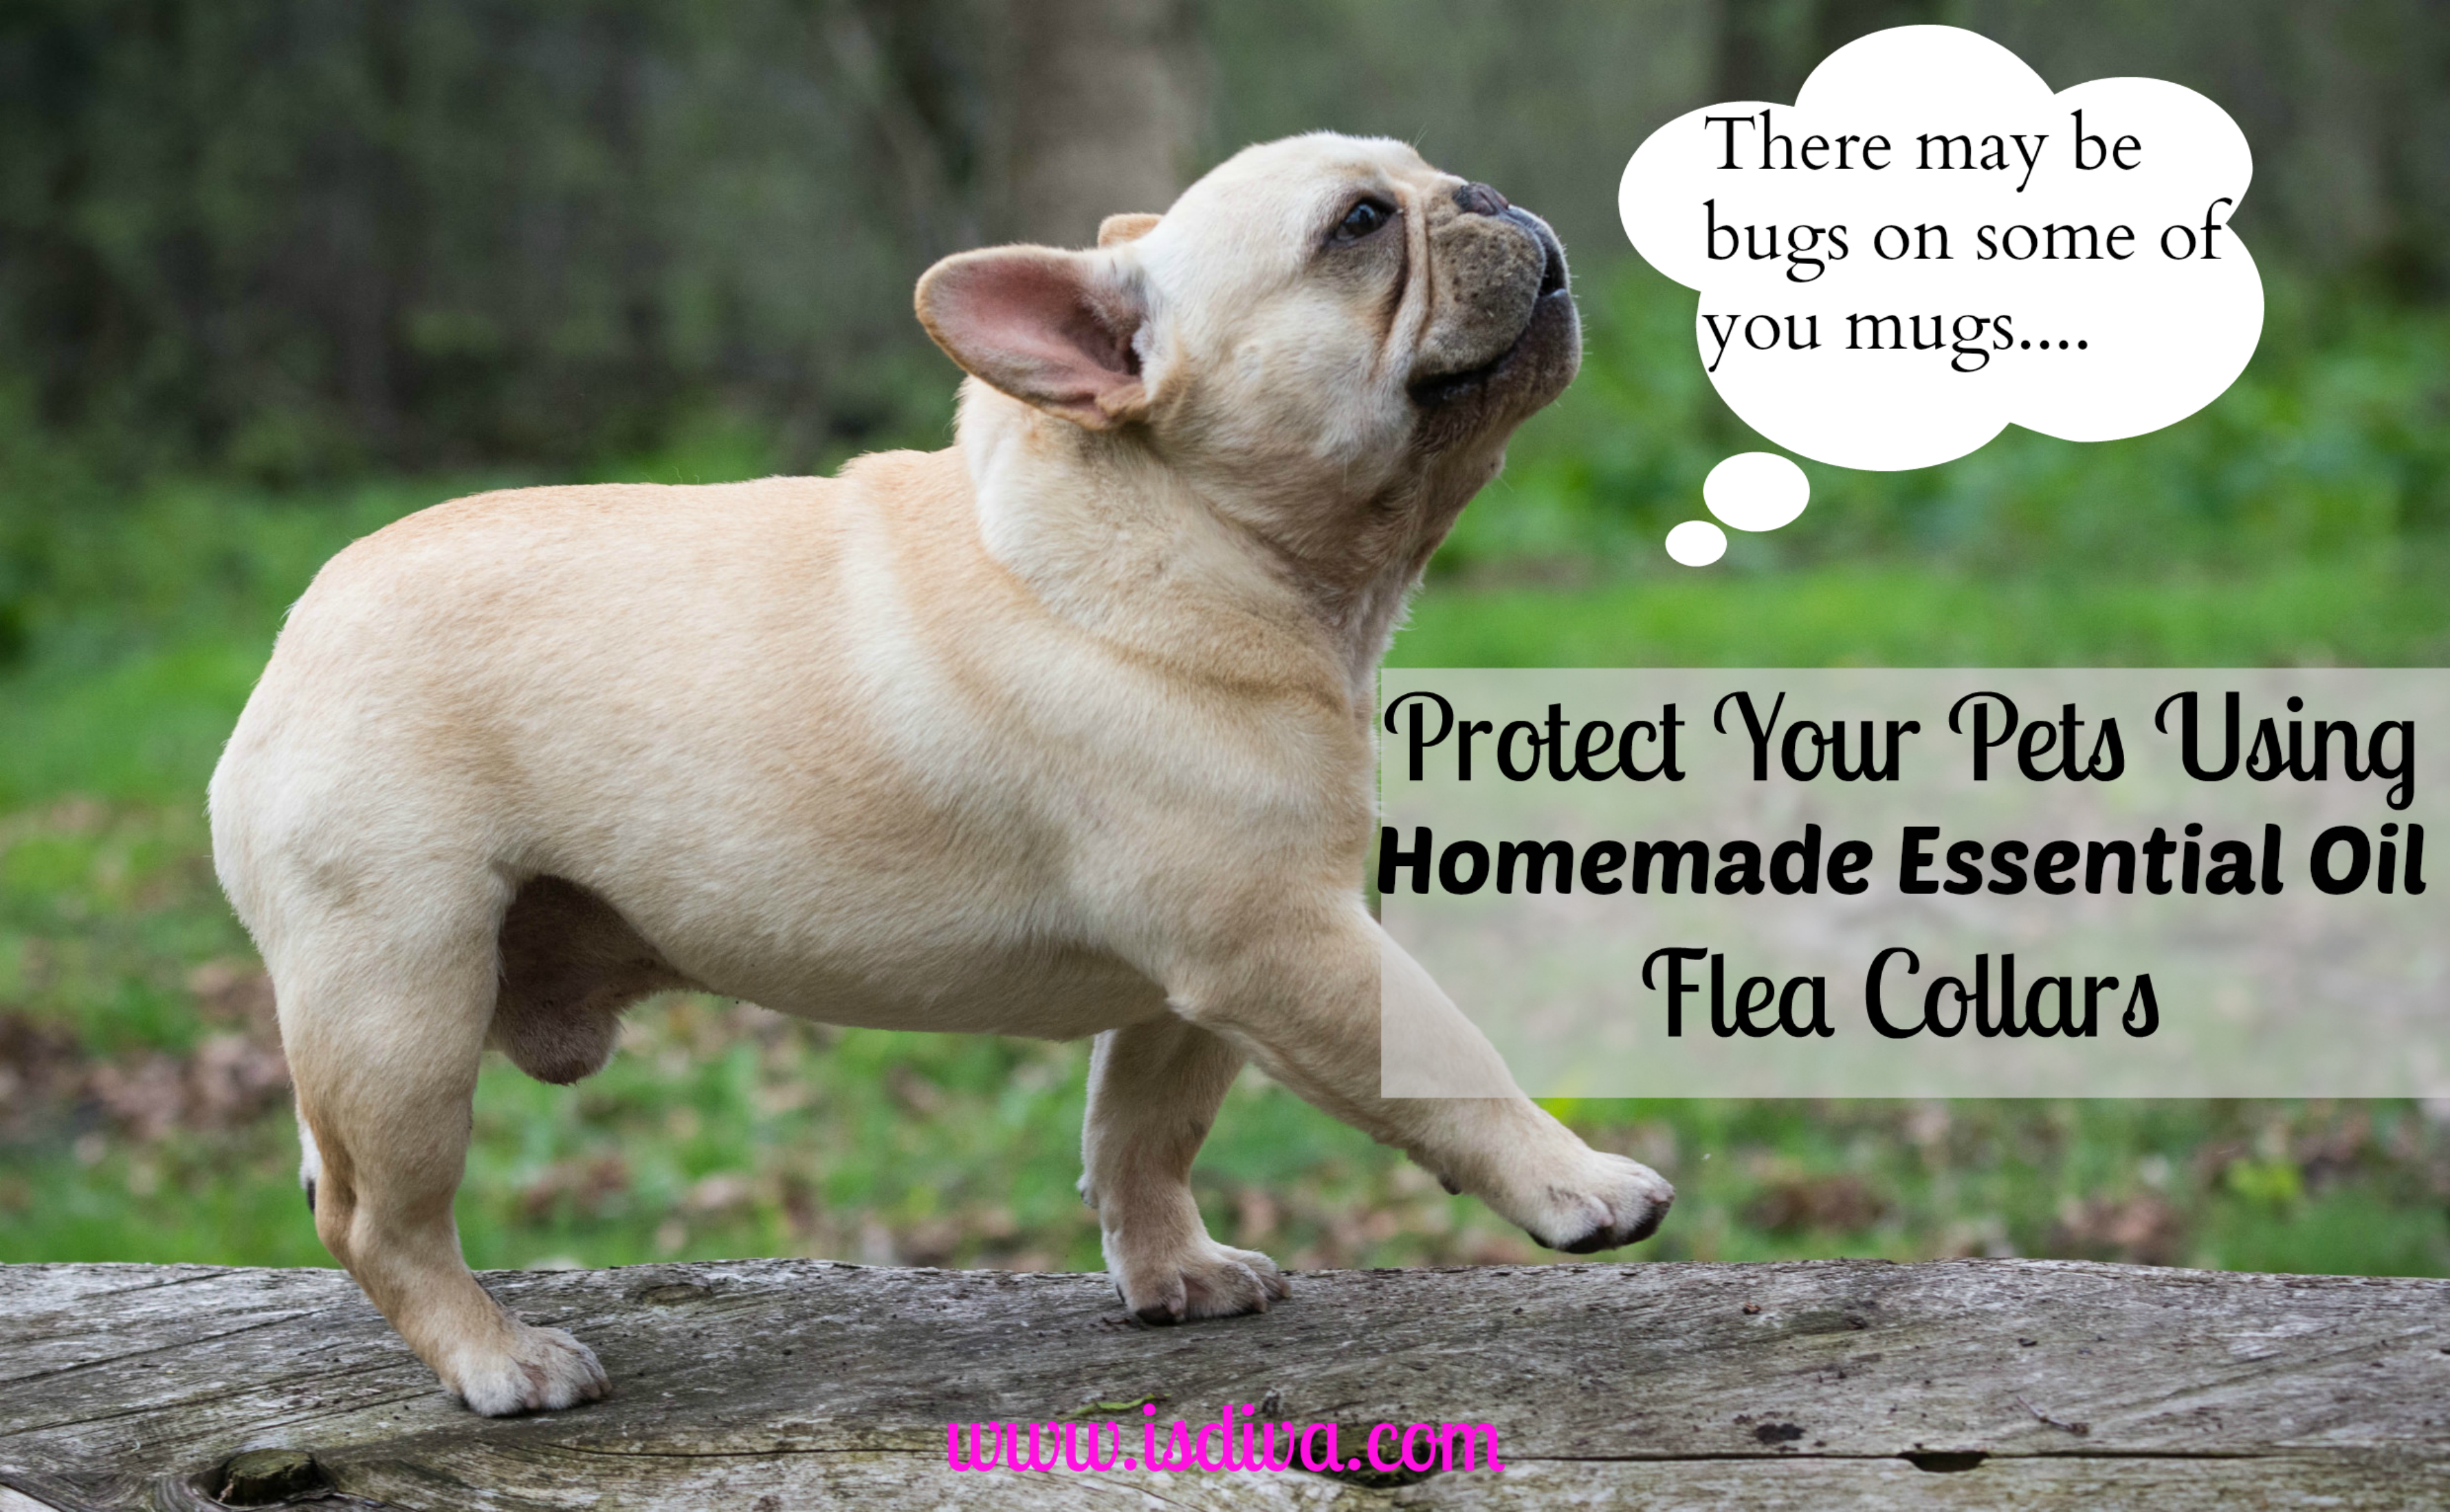 Protect Your Pets Using Homemade Essential Oil Flea Collars